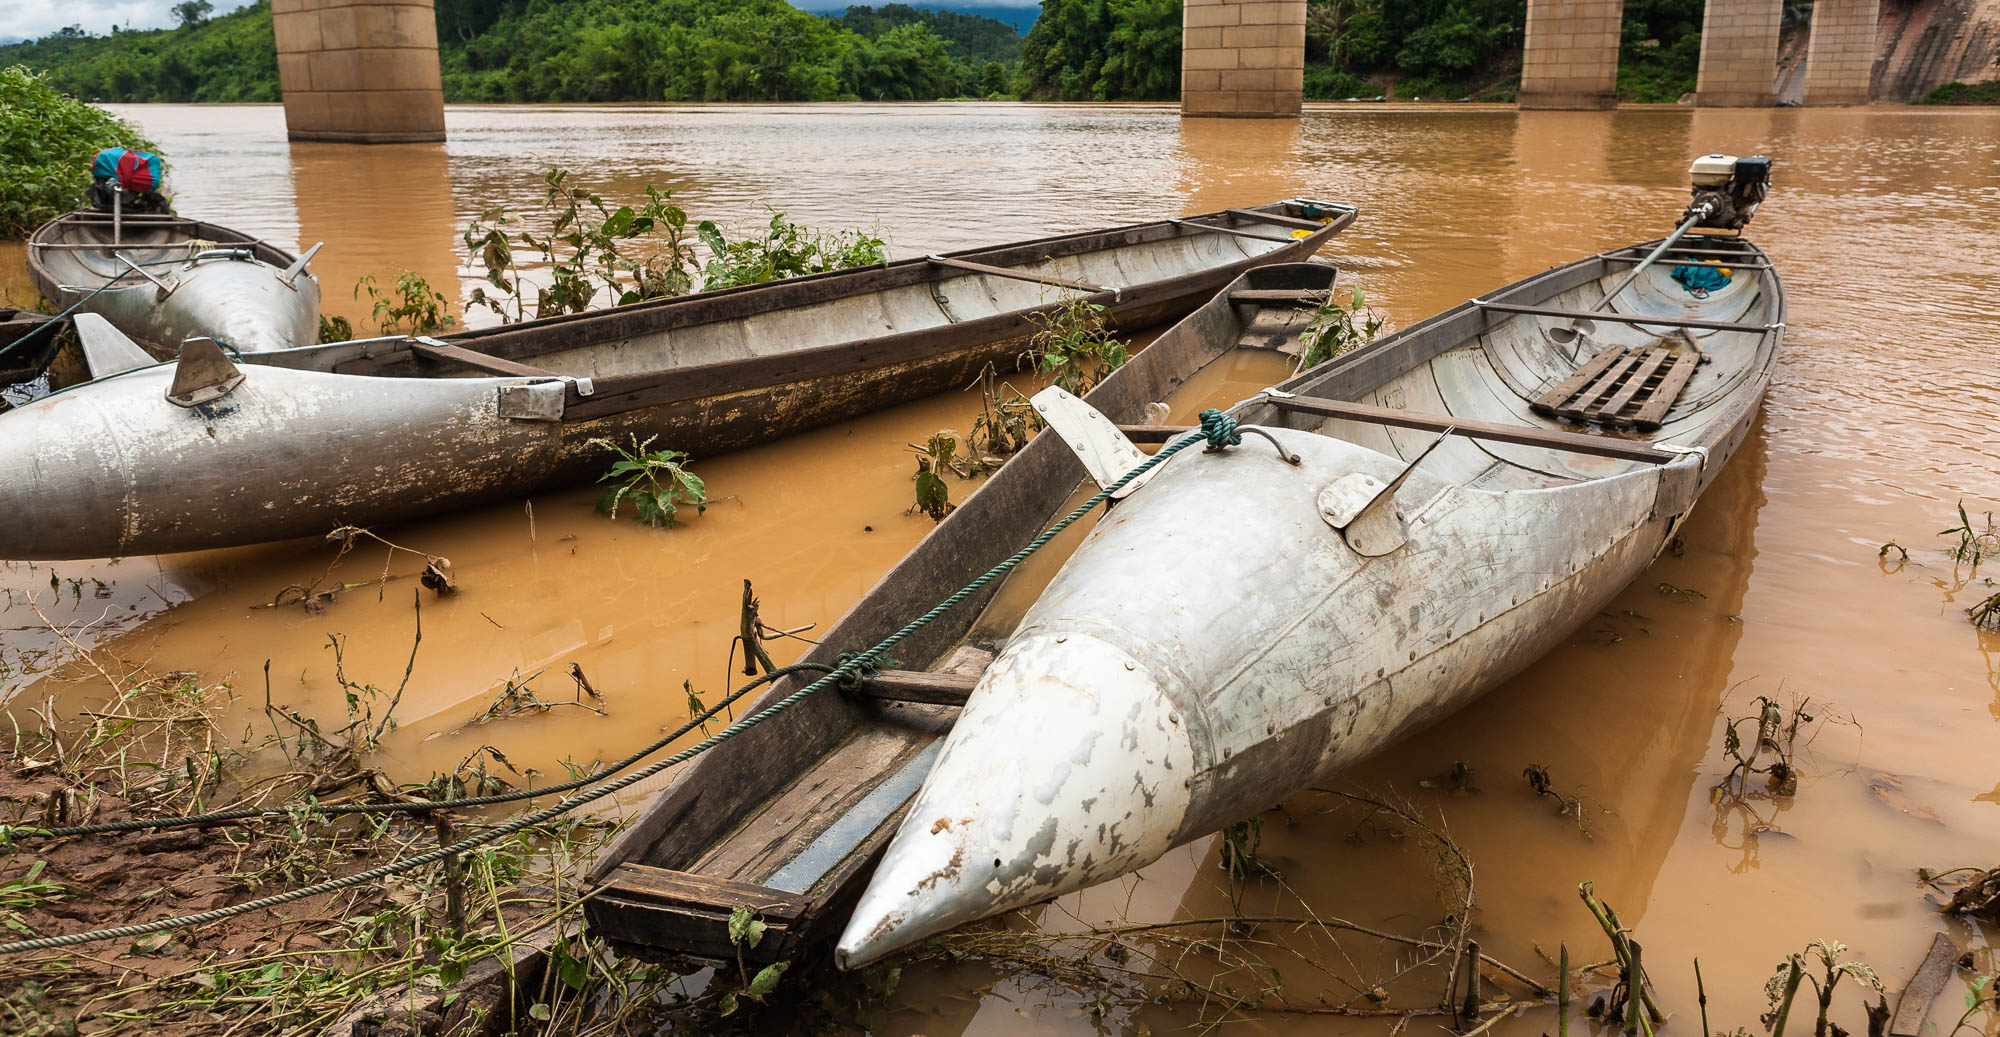 Boats in Nam Theun are recycled from long range fuel tanks jettisoned by US fighter bombers over 30 years ago.